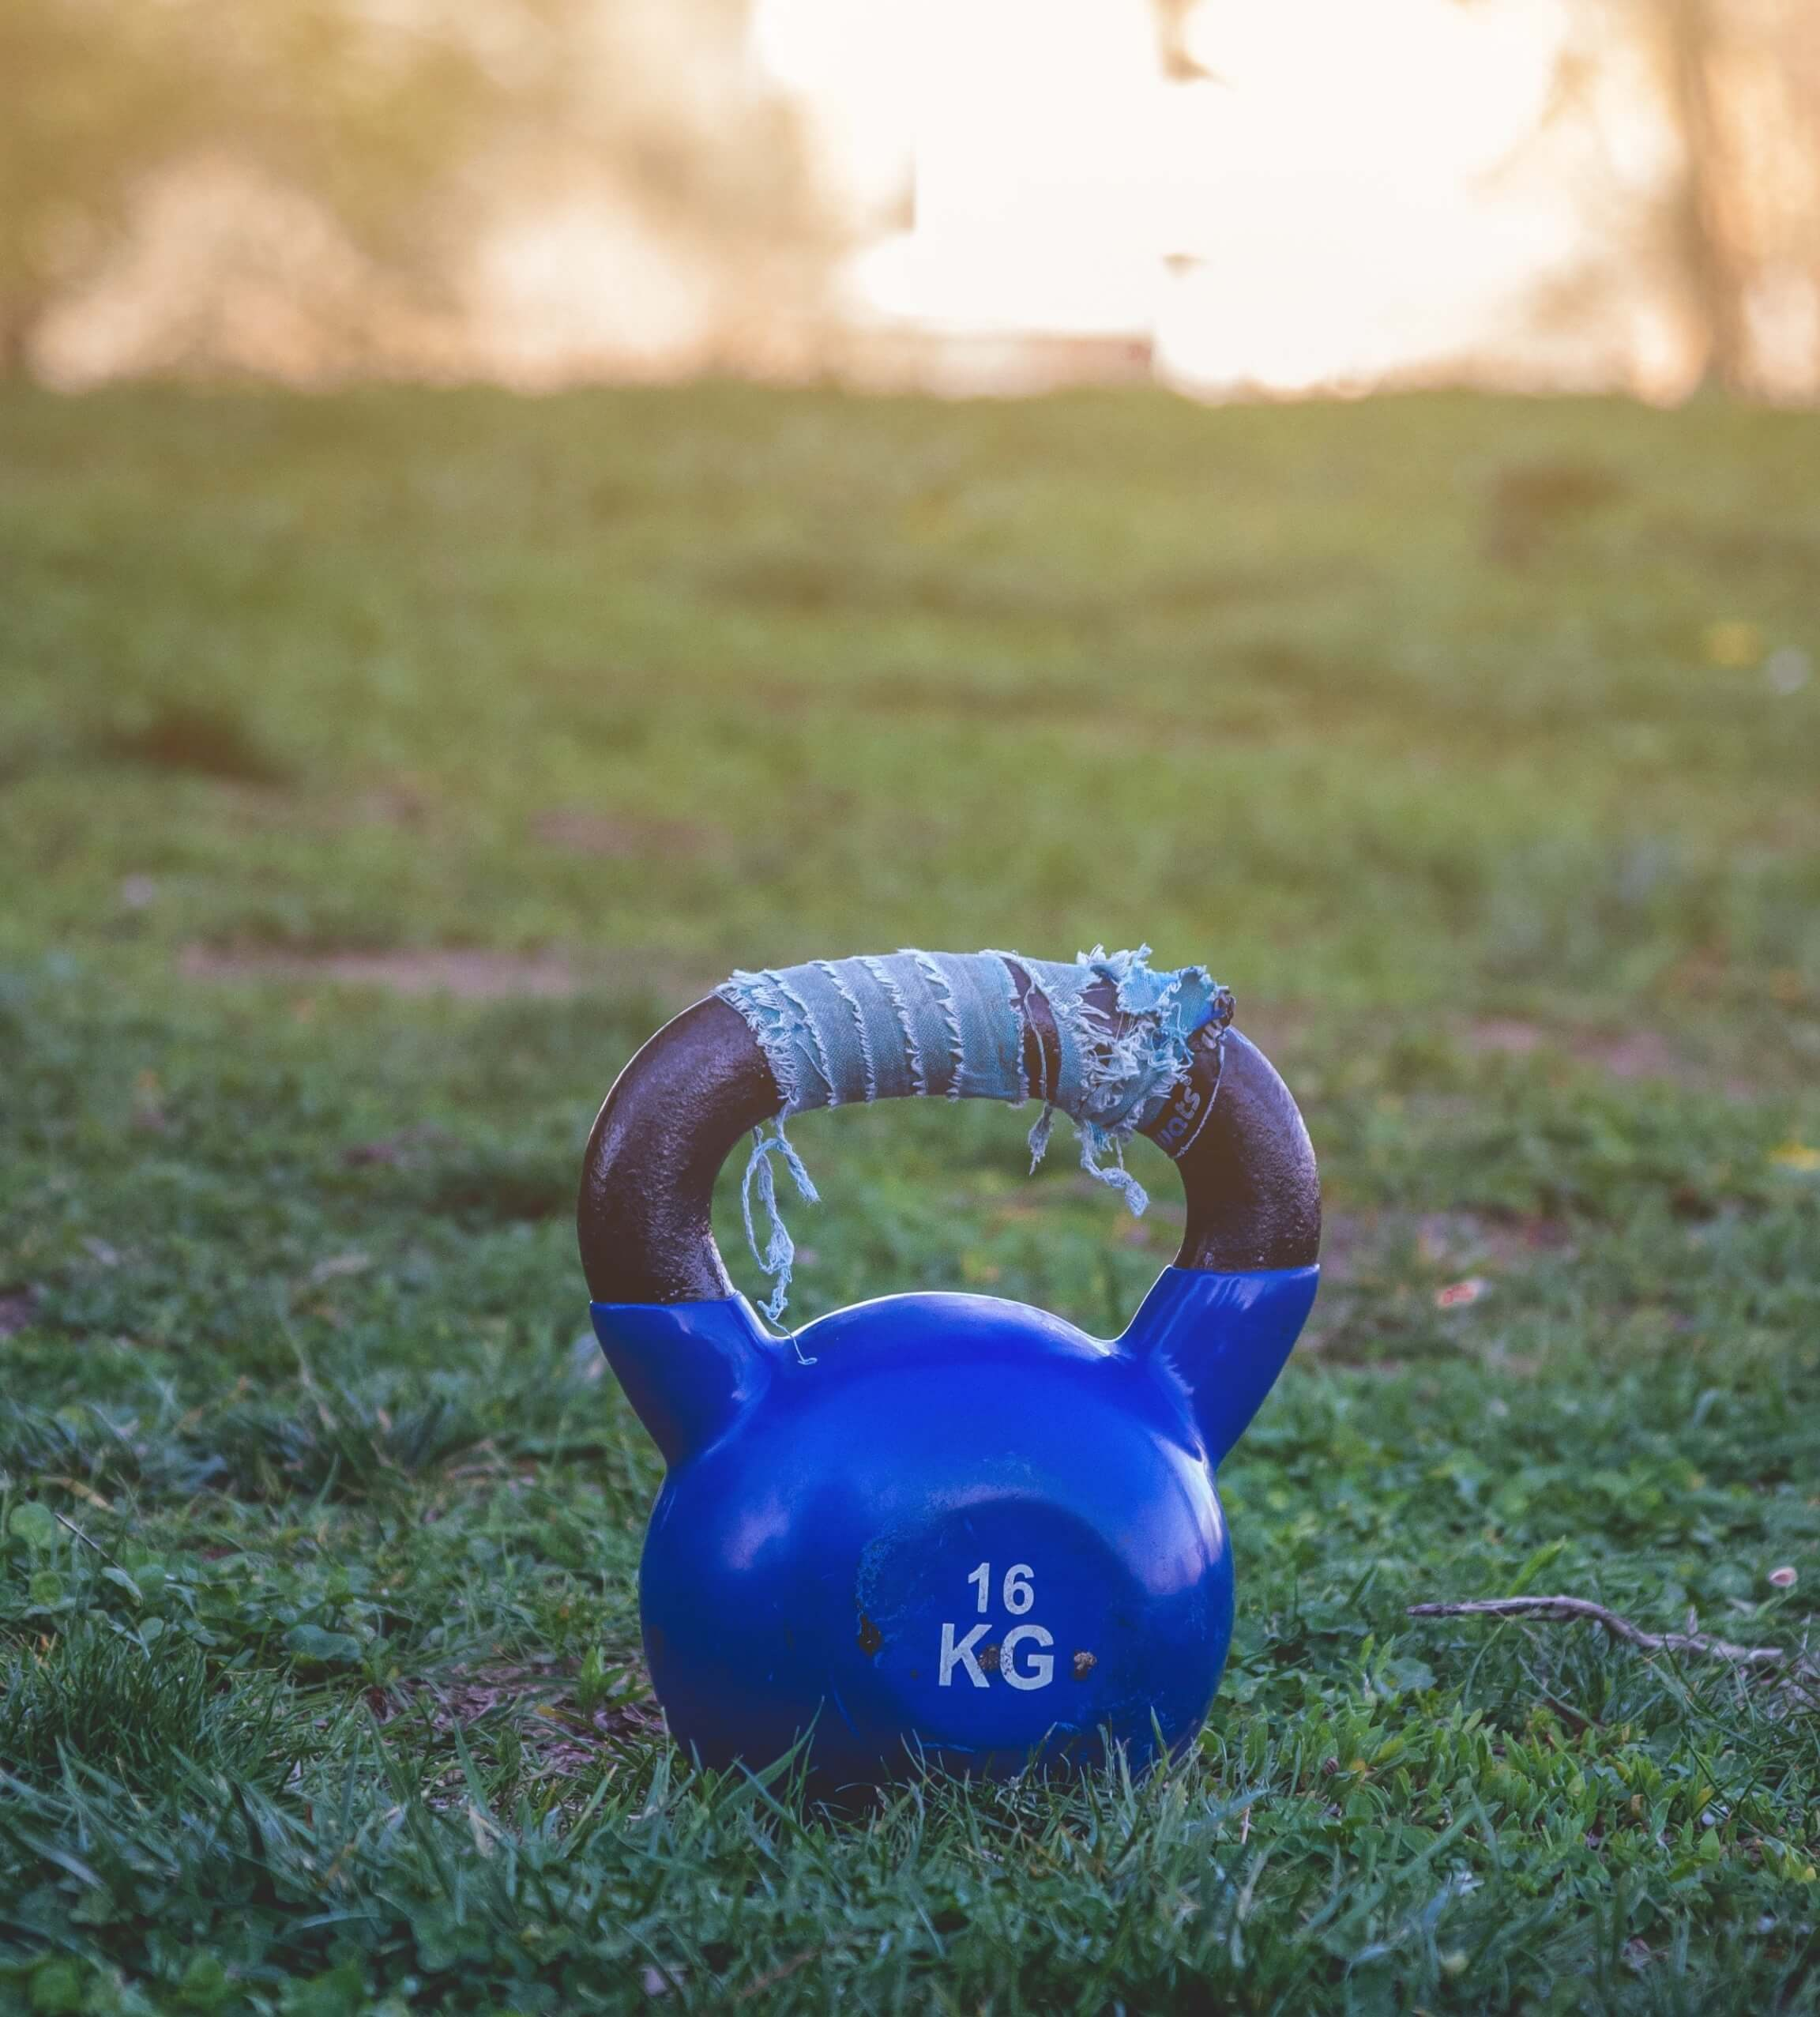 Kettlebell workouts are great for building endurance in runners.